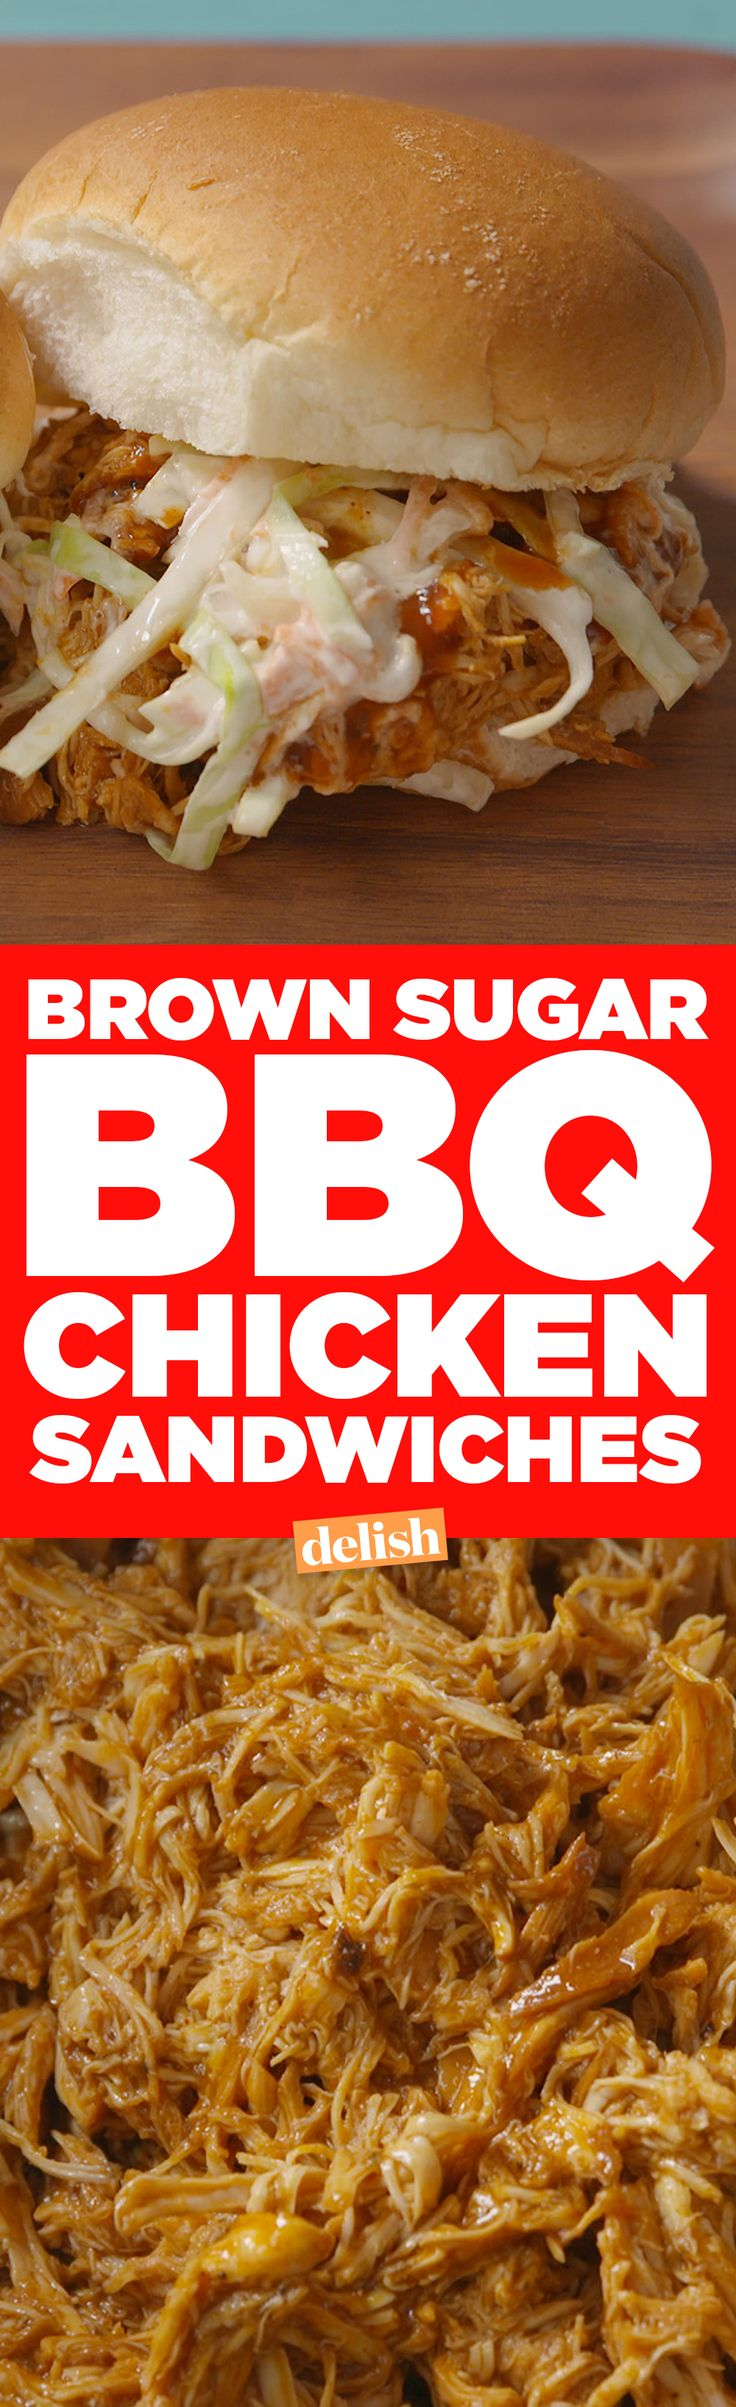 These Brown Sugar BBQ Chicken Sandwiches let your slow cooker do all the work on game day. Get the recipe from Delish.com.